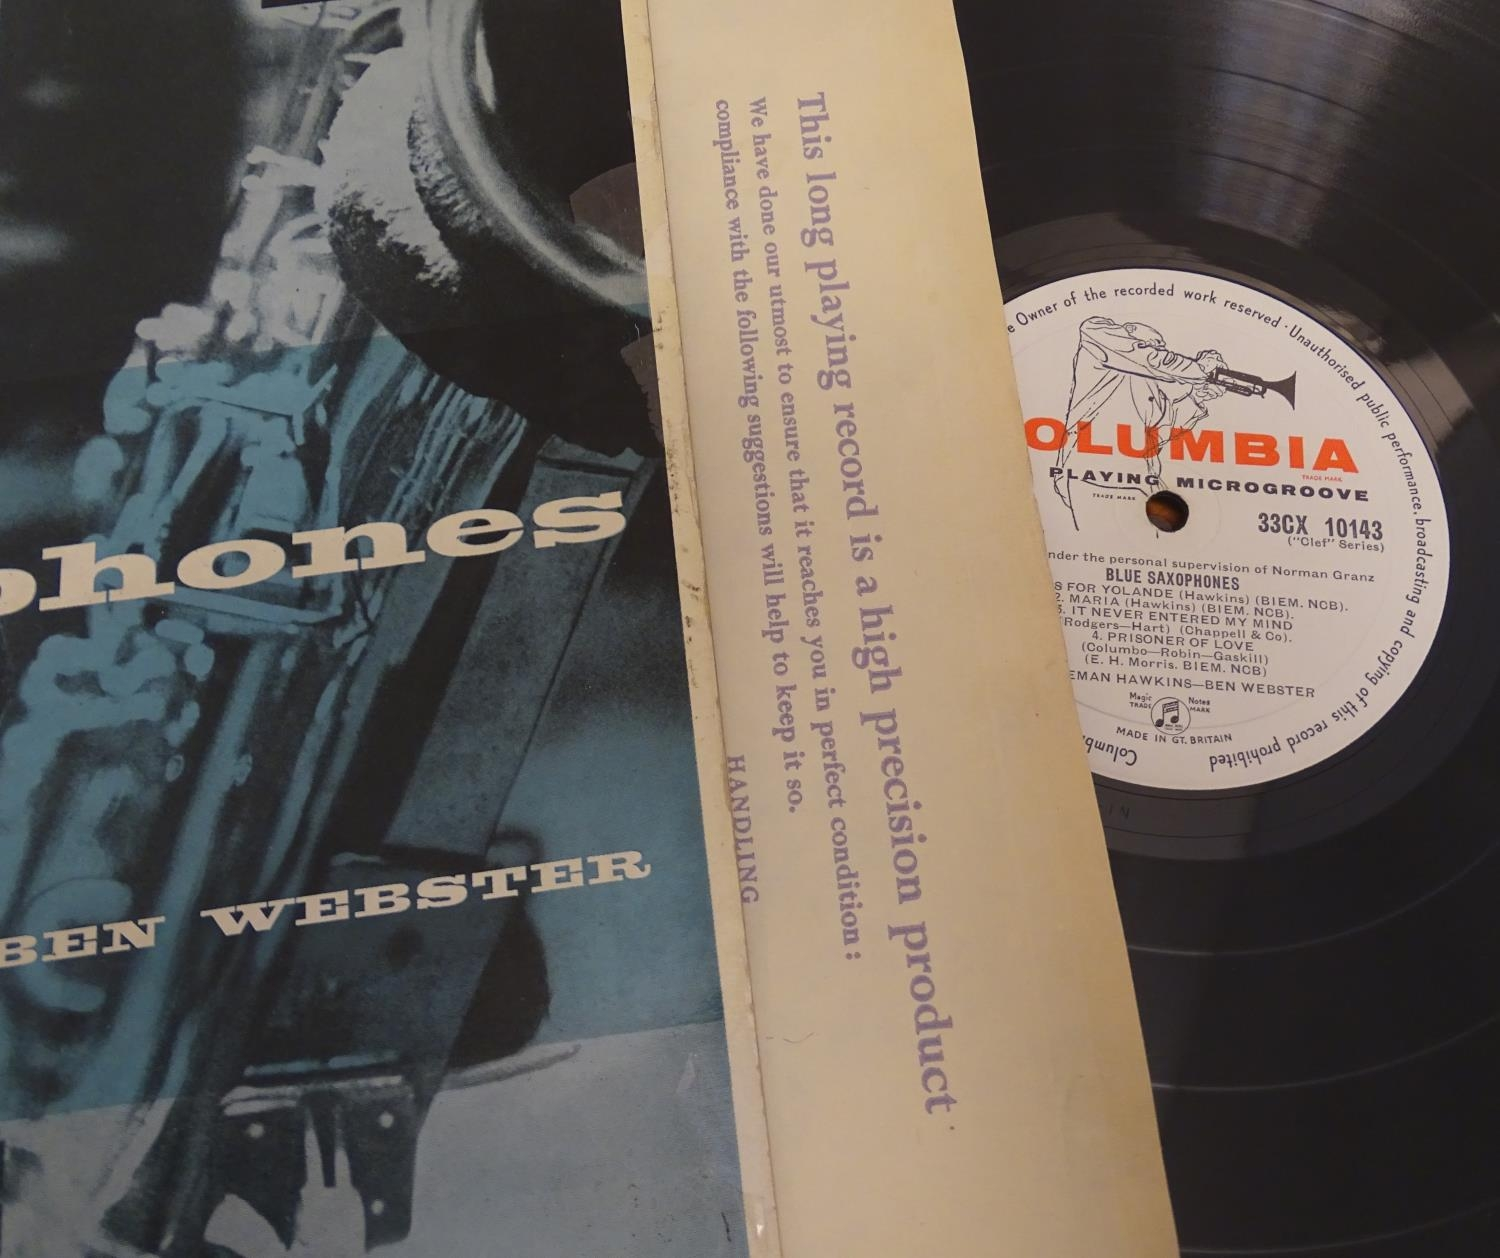 A collection of 20thC 33 rpm Vinyl records / LPs, - Jazz, comprising: The Eddie Condon Floor Show 2, - Image 16 of 19